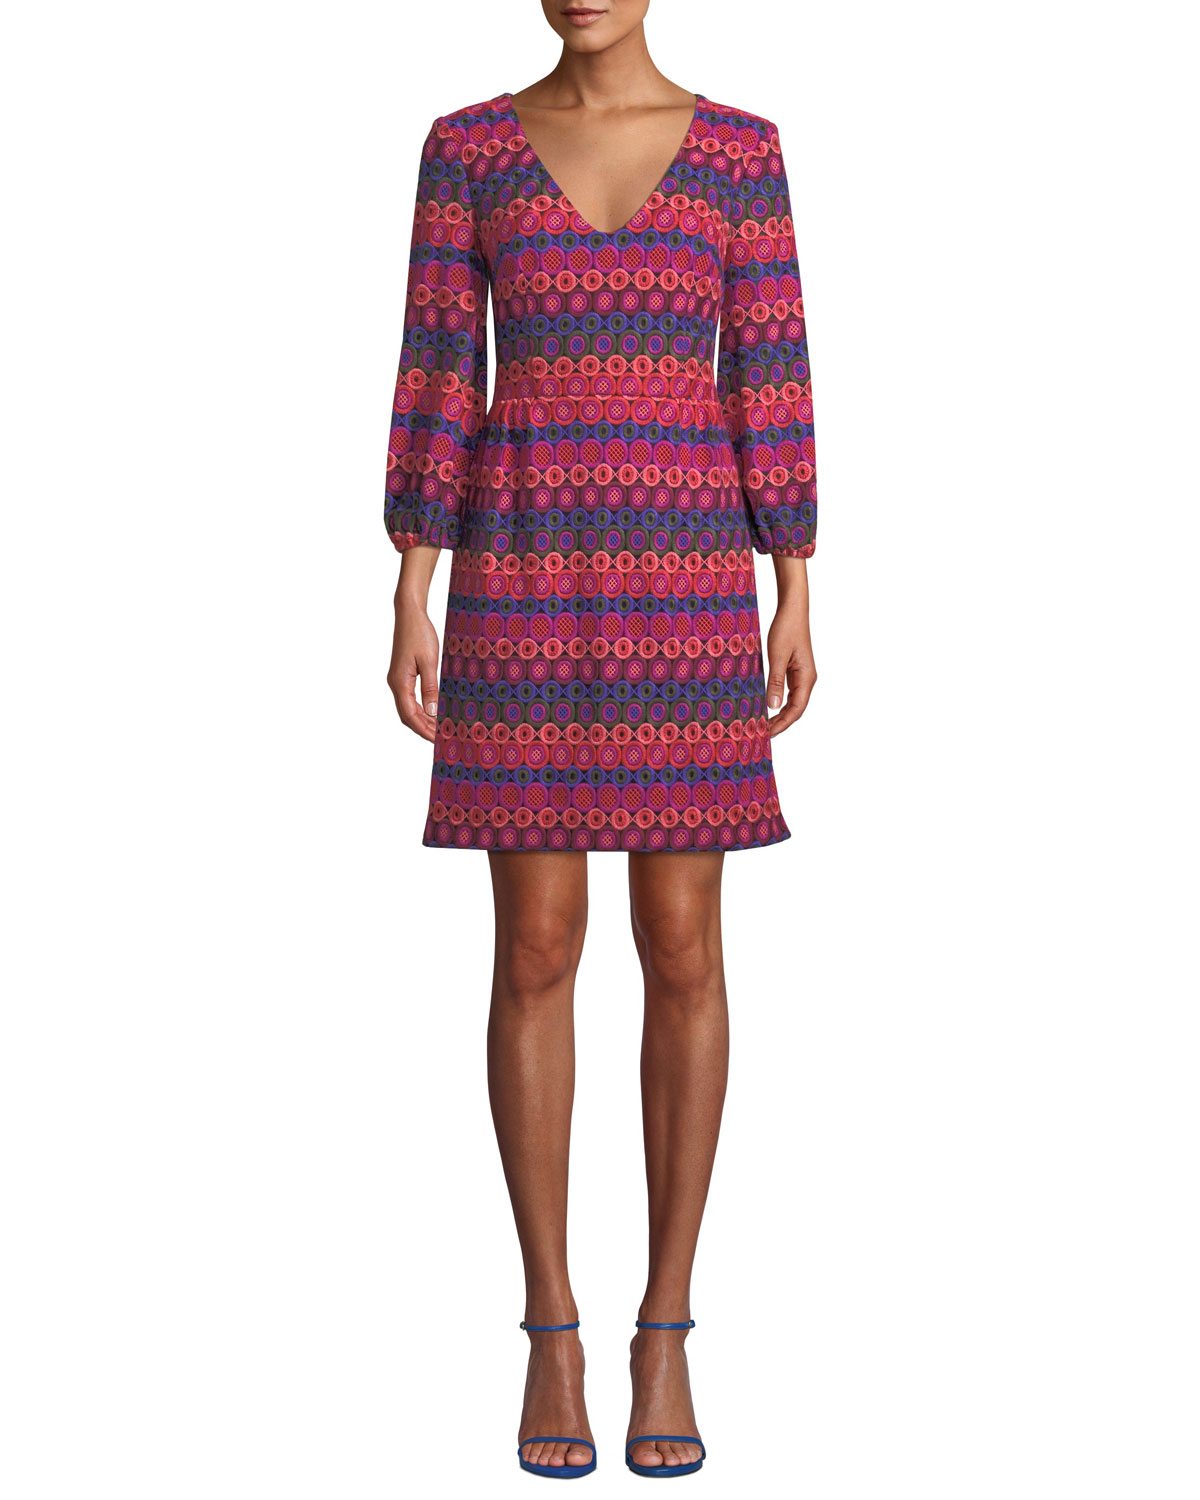 Nicole Crochet Dress w/ Bubble Sleeves